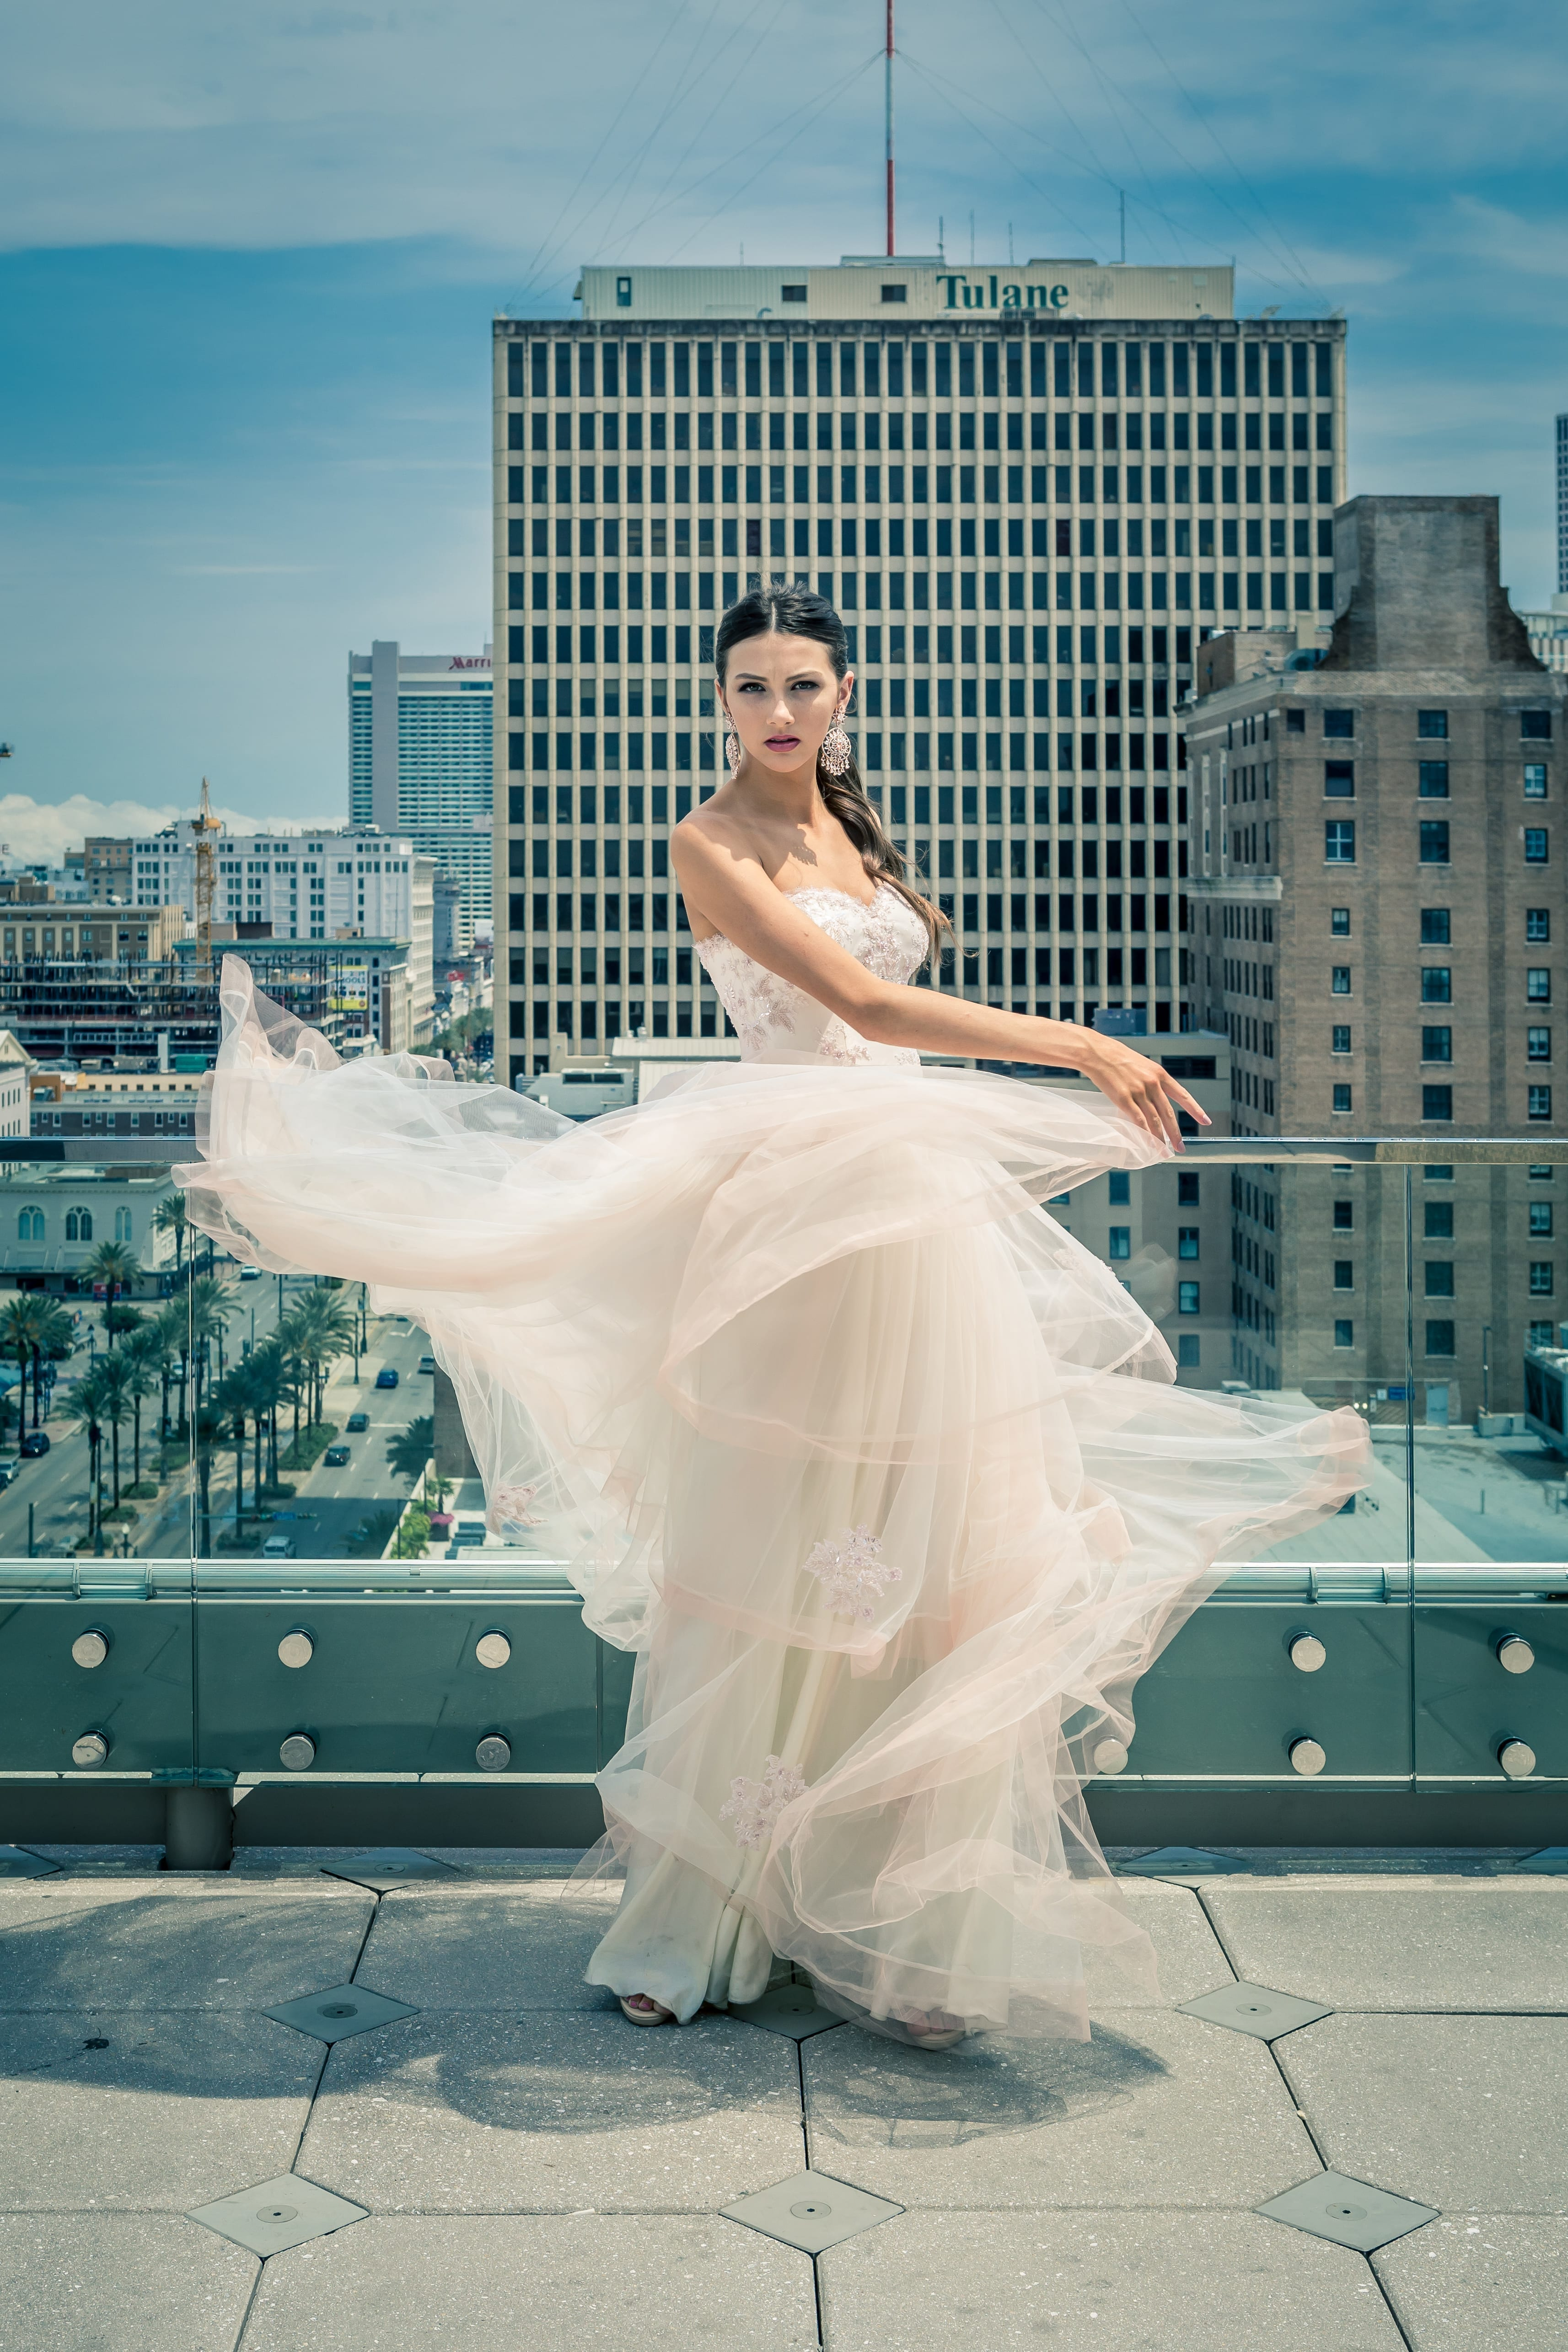 Couture Fashion Photography - Website Design & Branding for Fashion Industry - Palm Island Creative